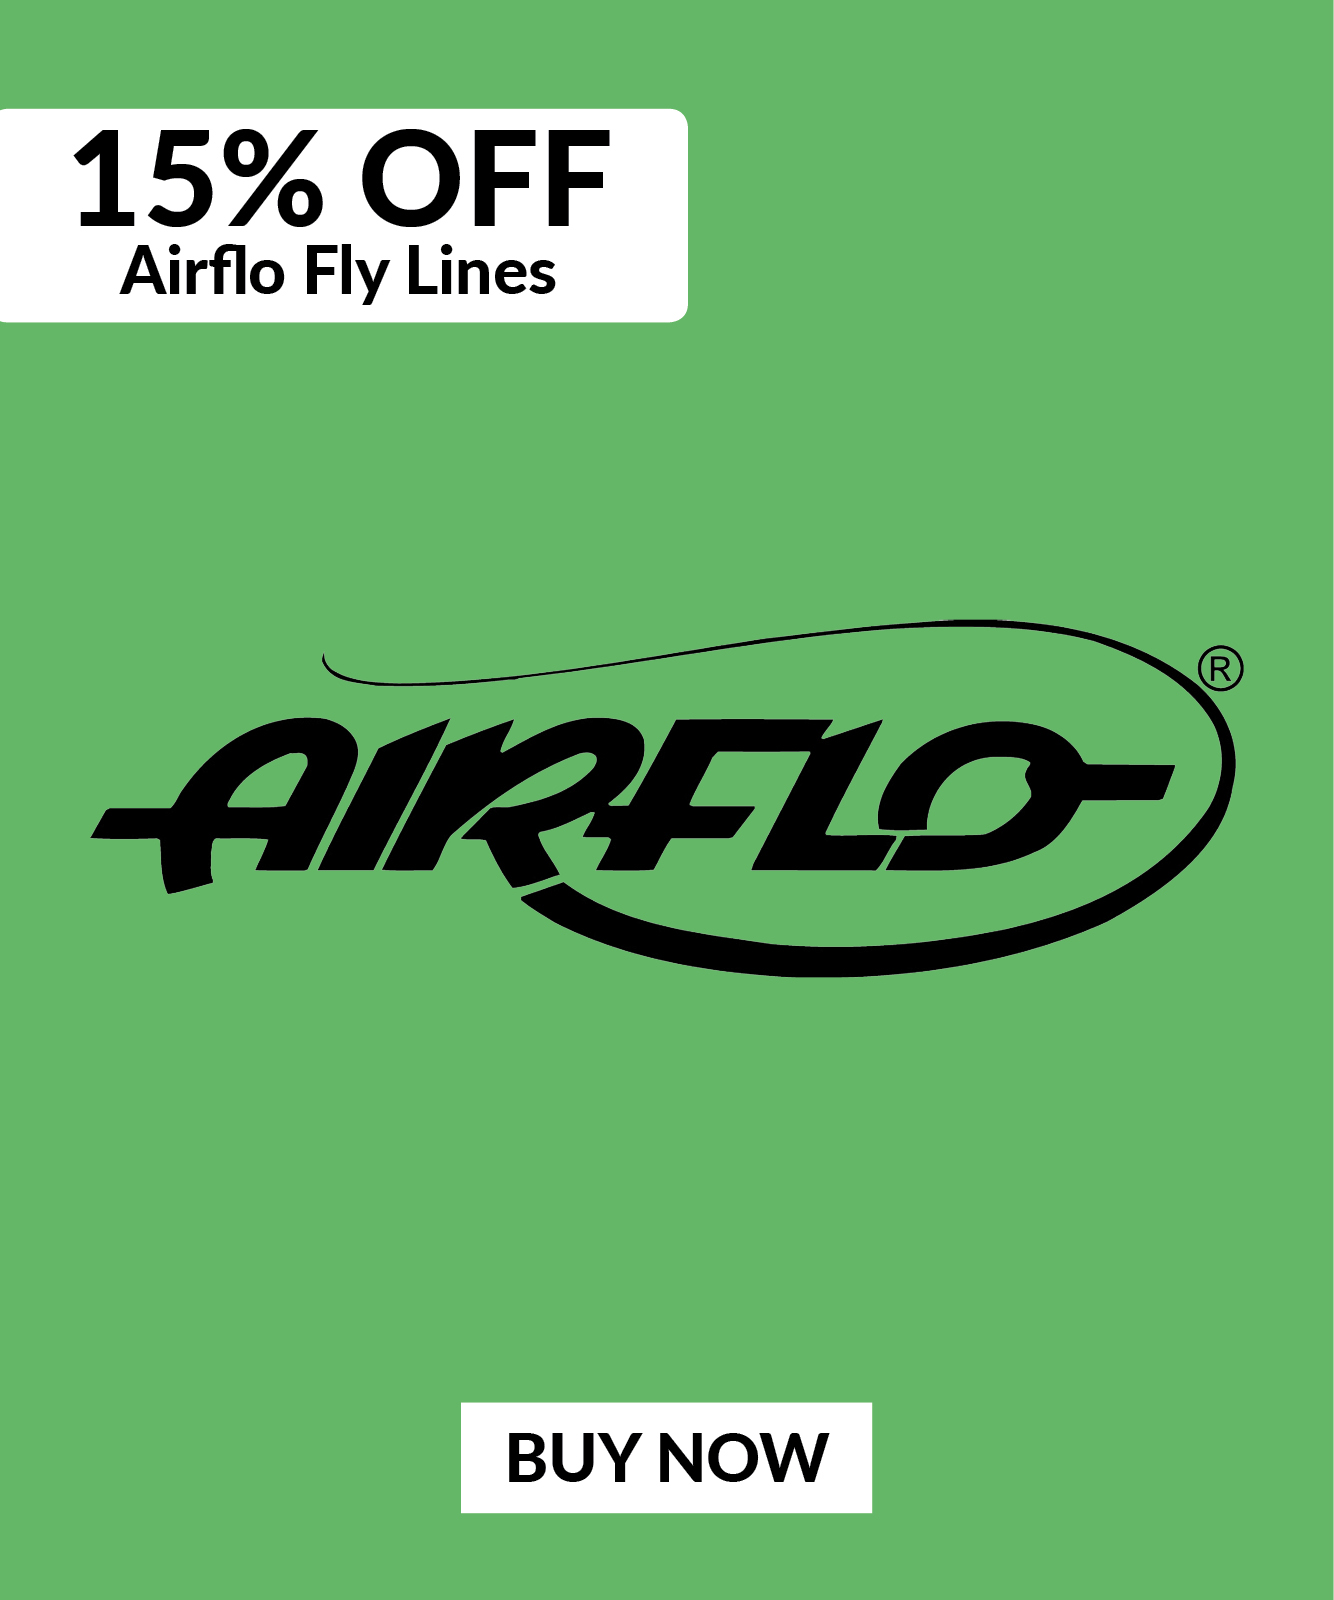 15% OFF Airflo Fly Lines